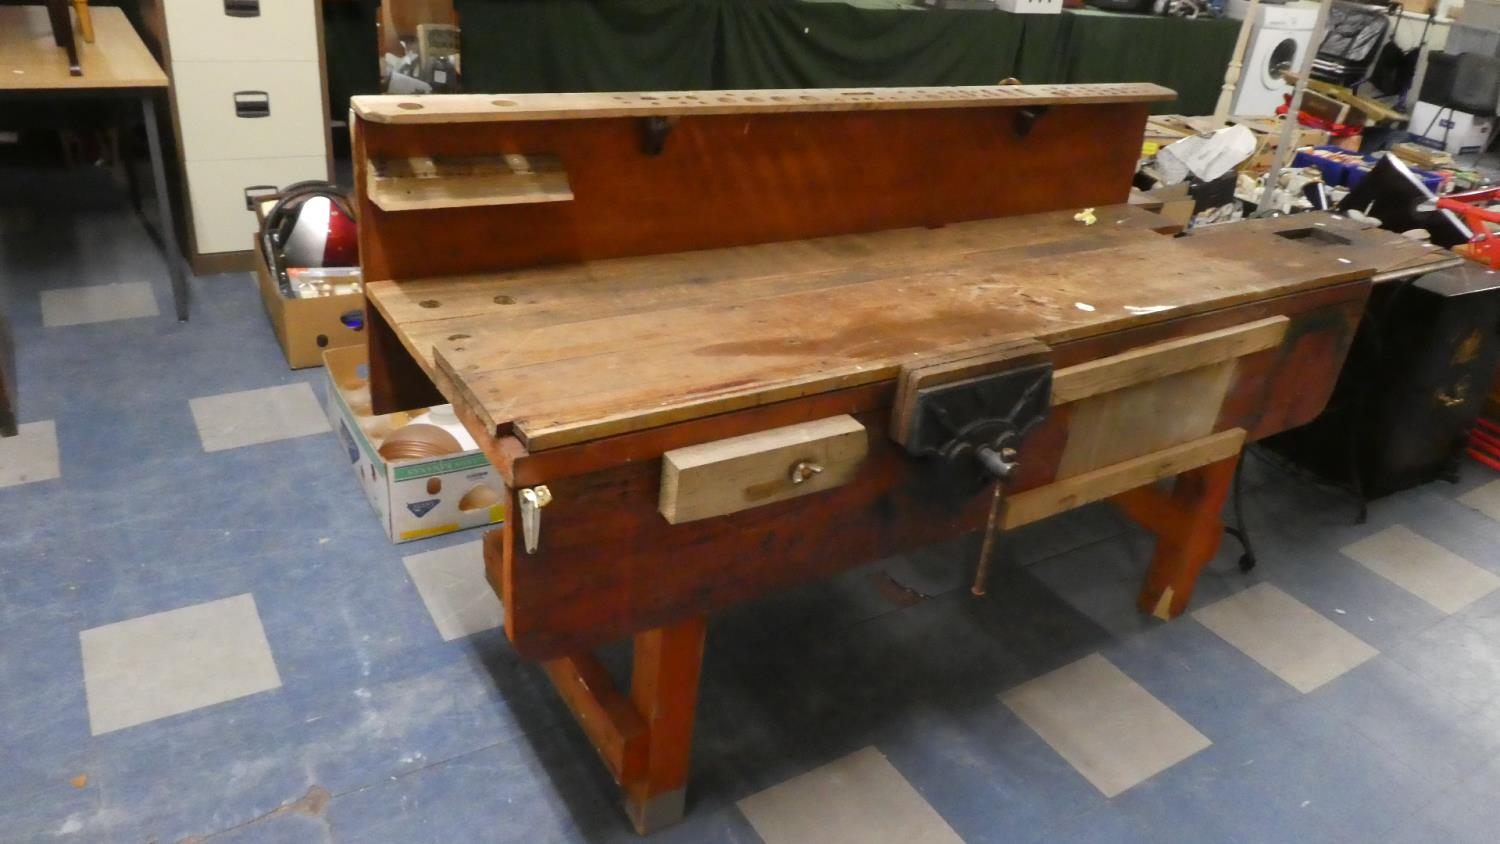 Lot 338 - A Wooden Work Bench with Vice, 185cm Wide